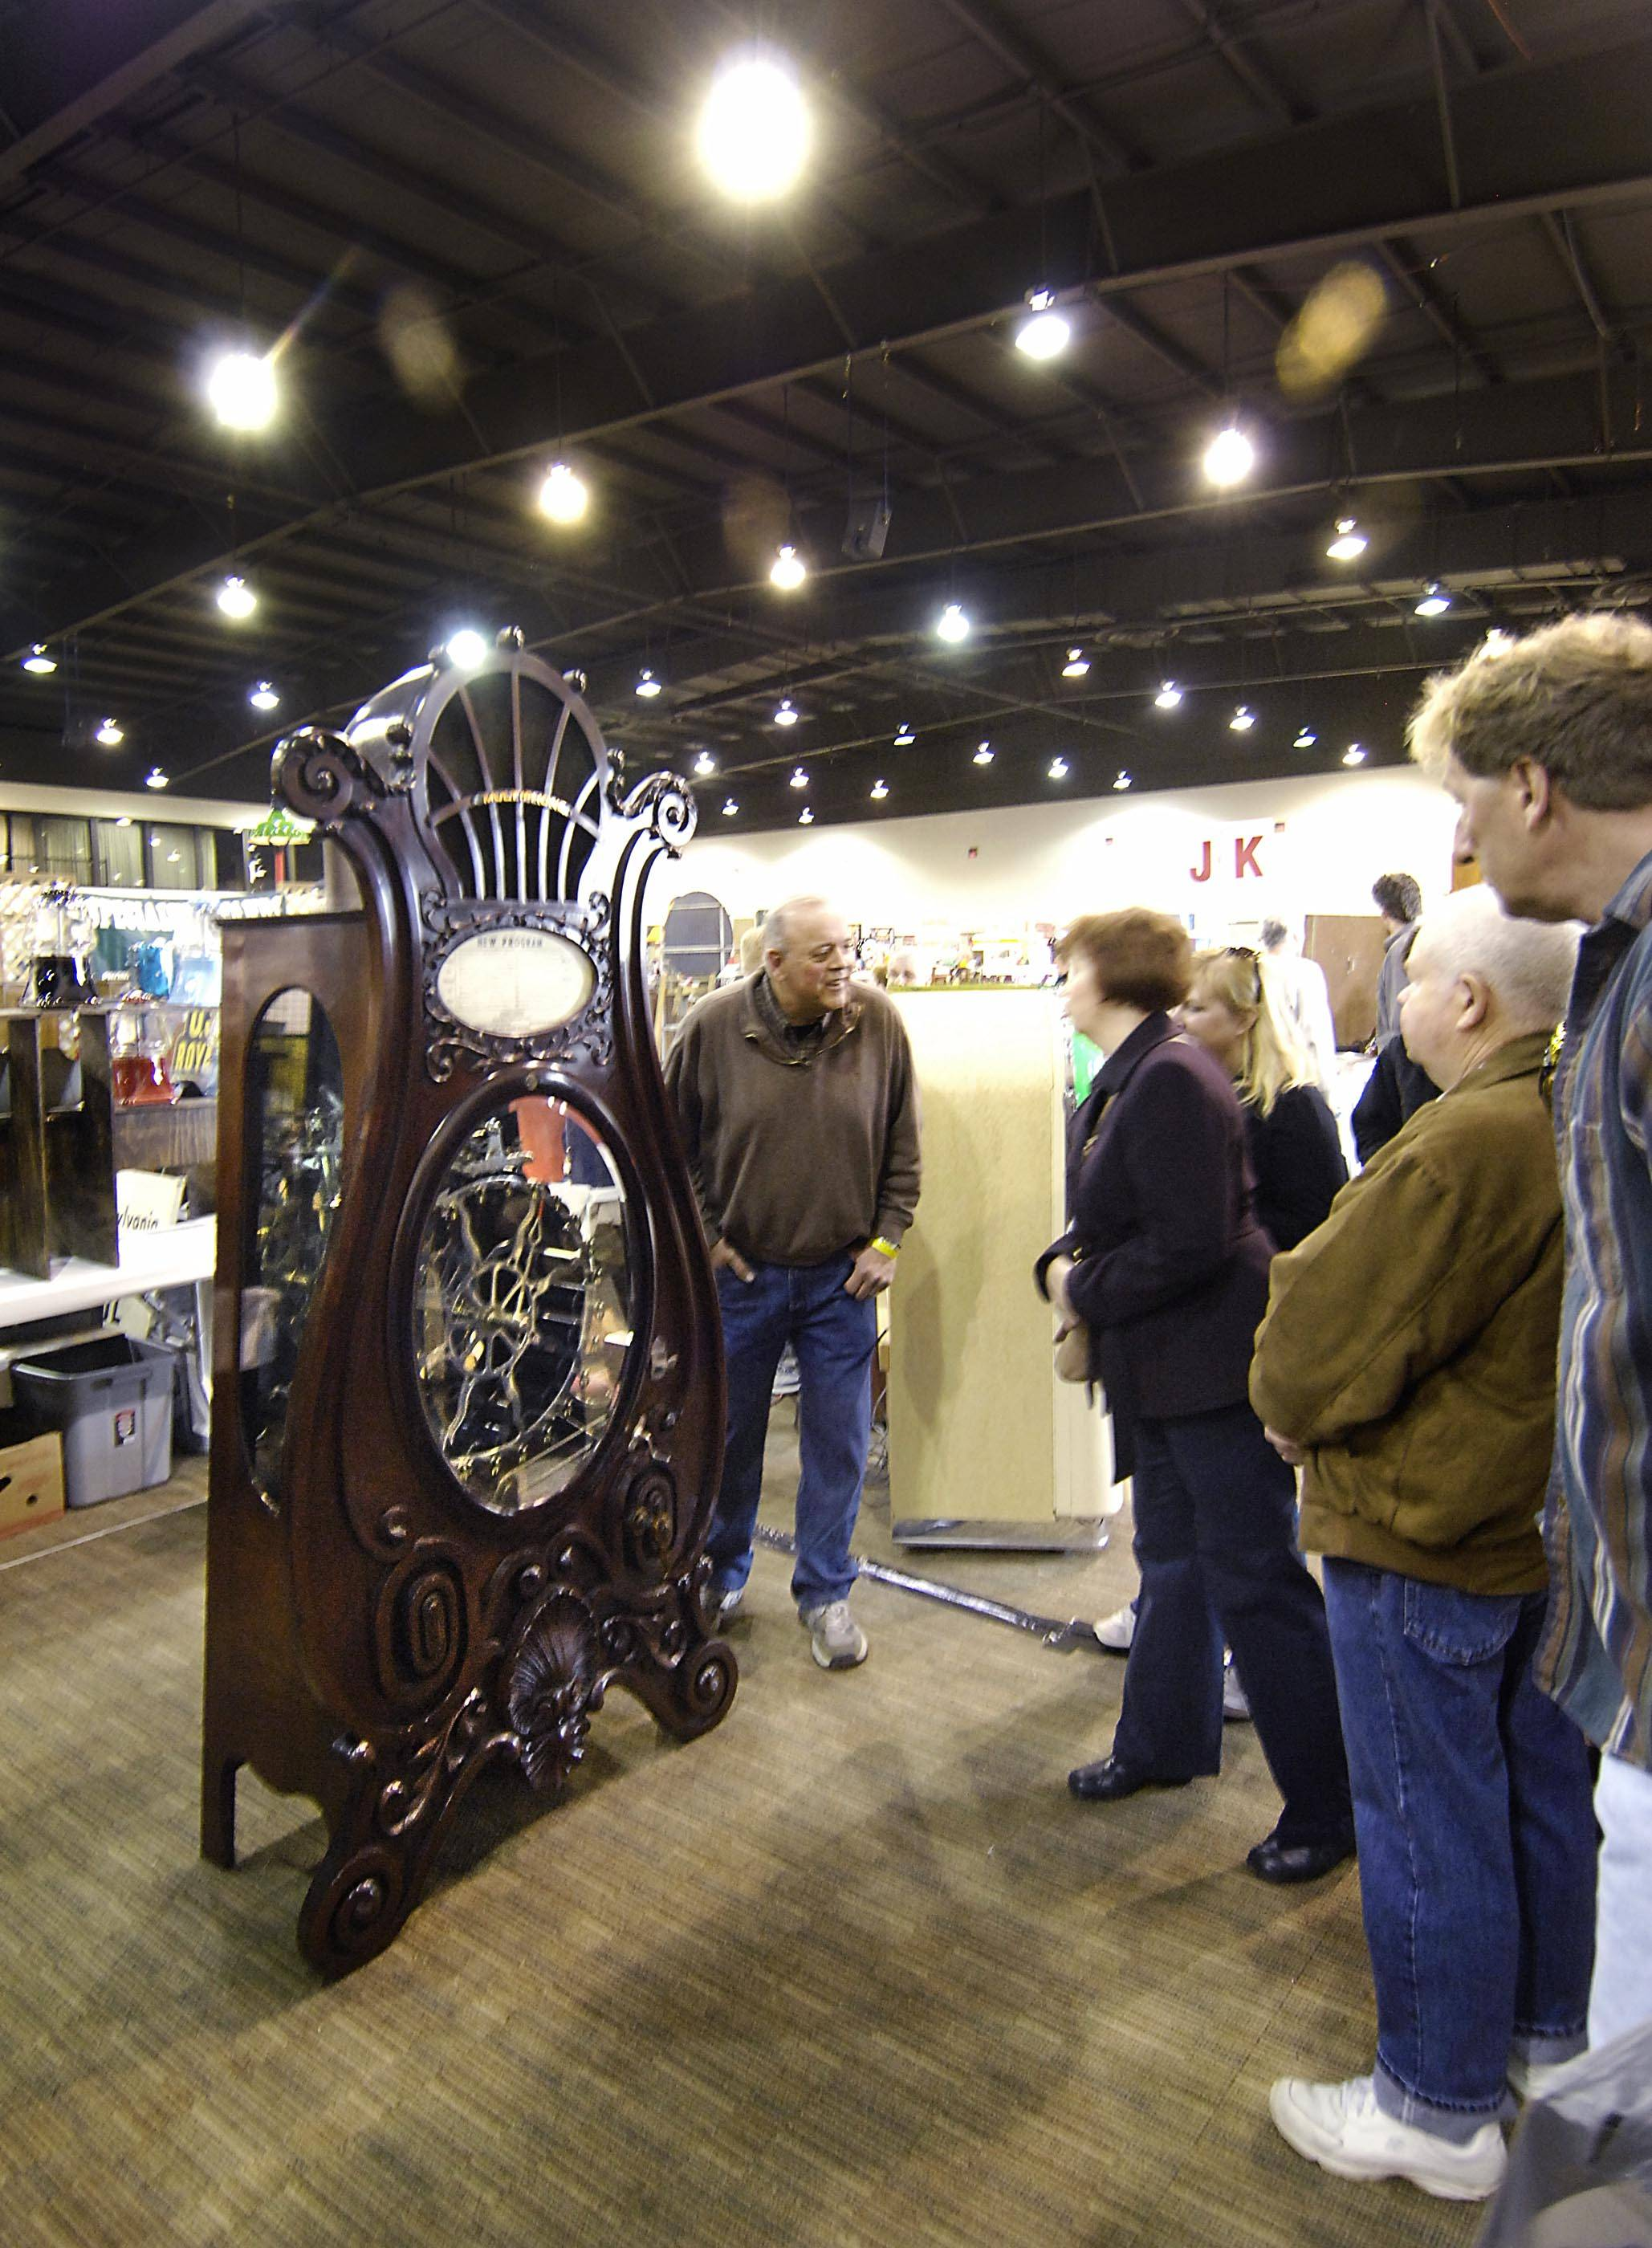 Paul Baker, of Buffalo, N.Y., answers questions about his 1907 Multiphone coin-operated phonograph Sunday at the Chicagoland Antique Advertising, Slot-Machine & Jukebox Show at the Pheasant Run Resort in St. Charles. Baker spent more than 700 hours restoring the mahogany music machine and was asking $135,000 for it.